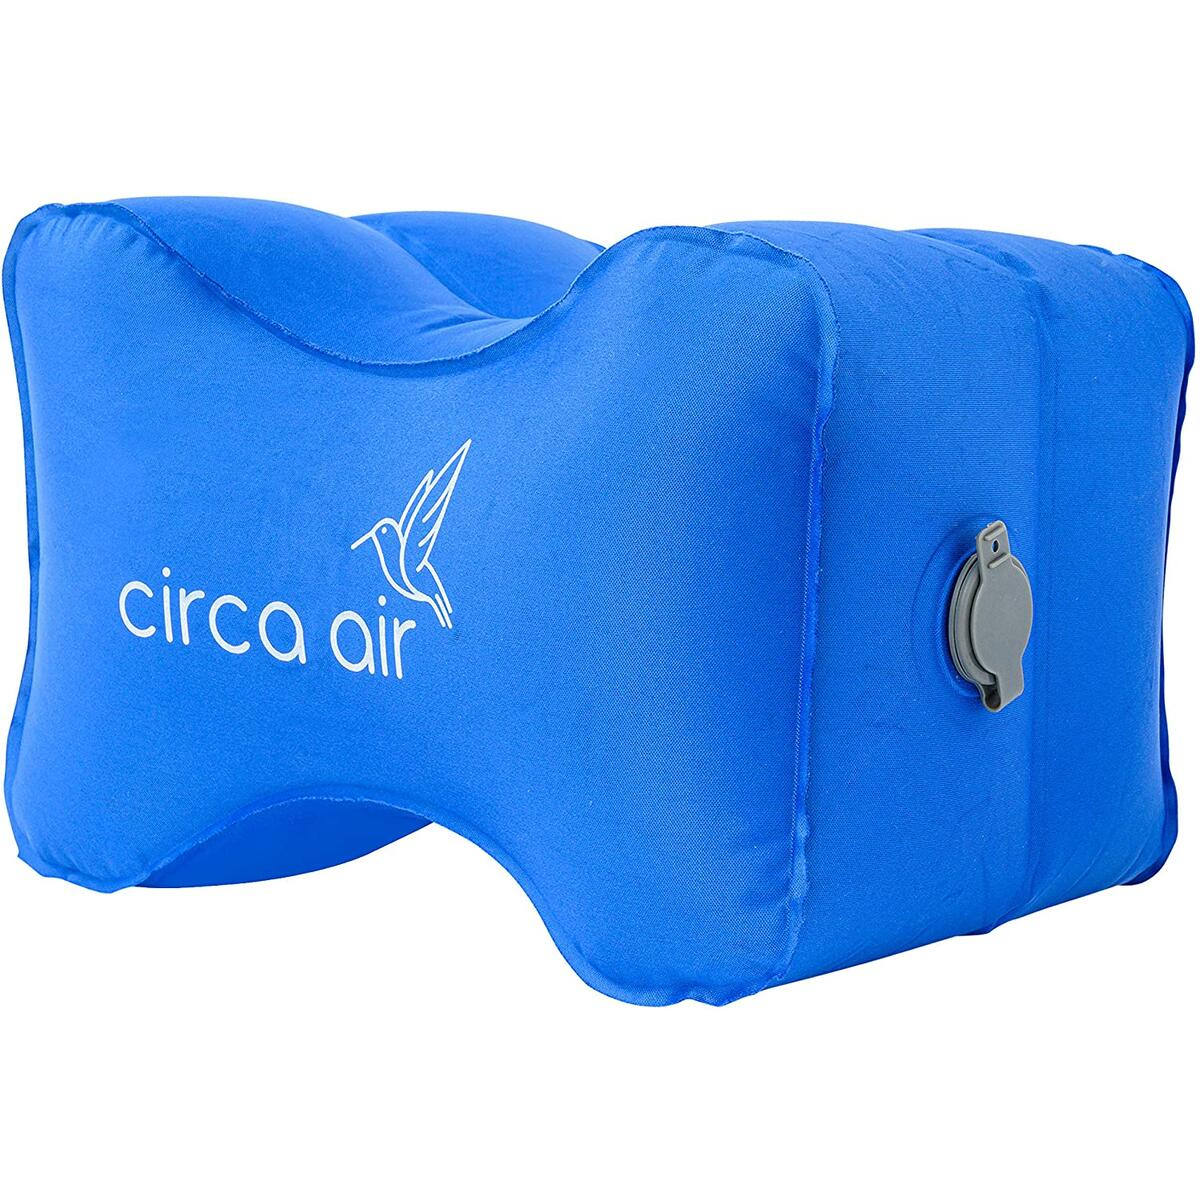 Inflatable Knee Pillow - Super Light & Compact For Travel - weighs just 0.13 lbs! Great for Sciatica Relief, Back, Hip &Joint Pain.